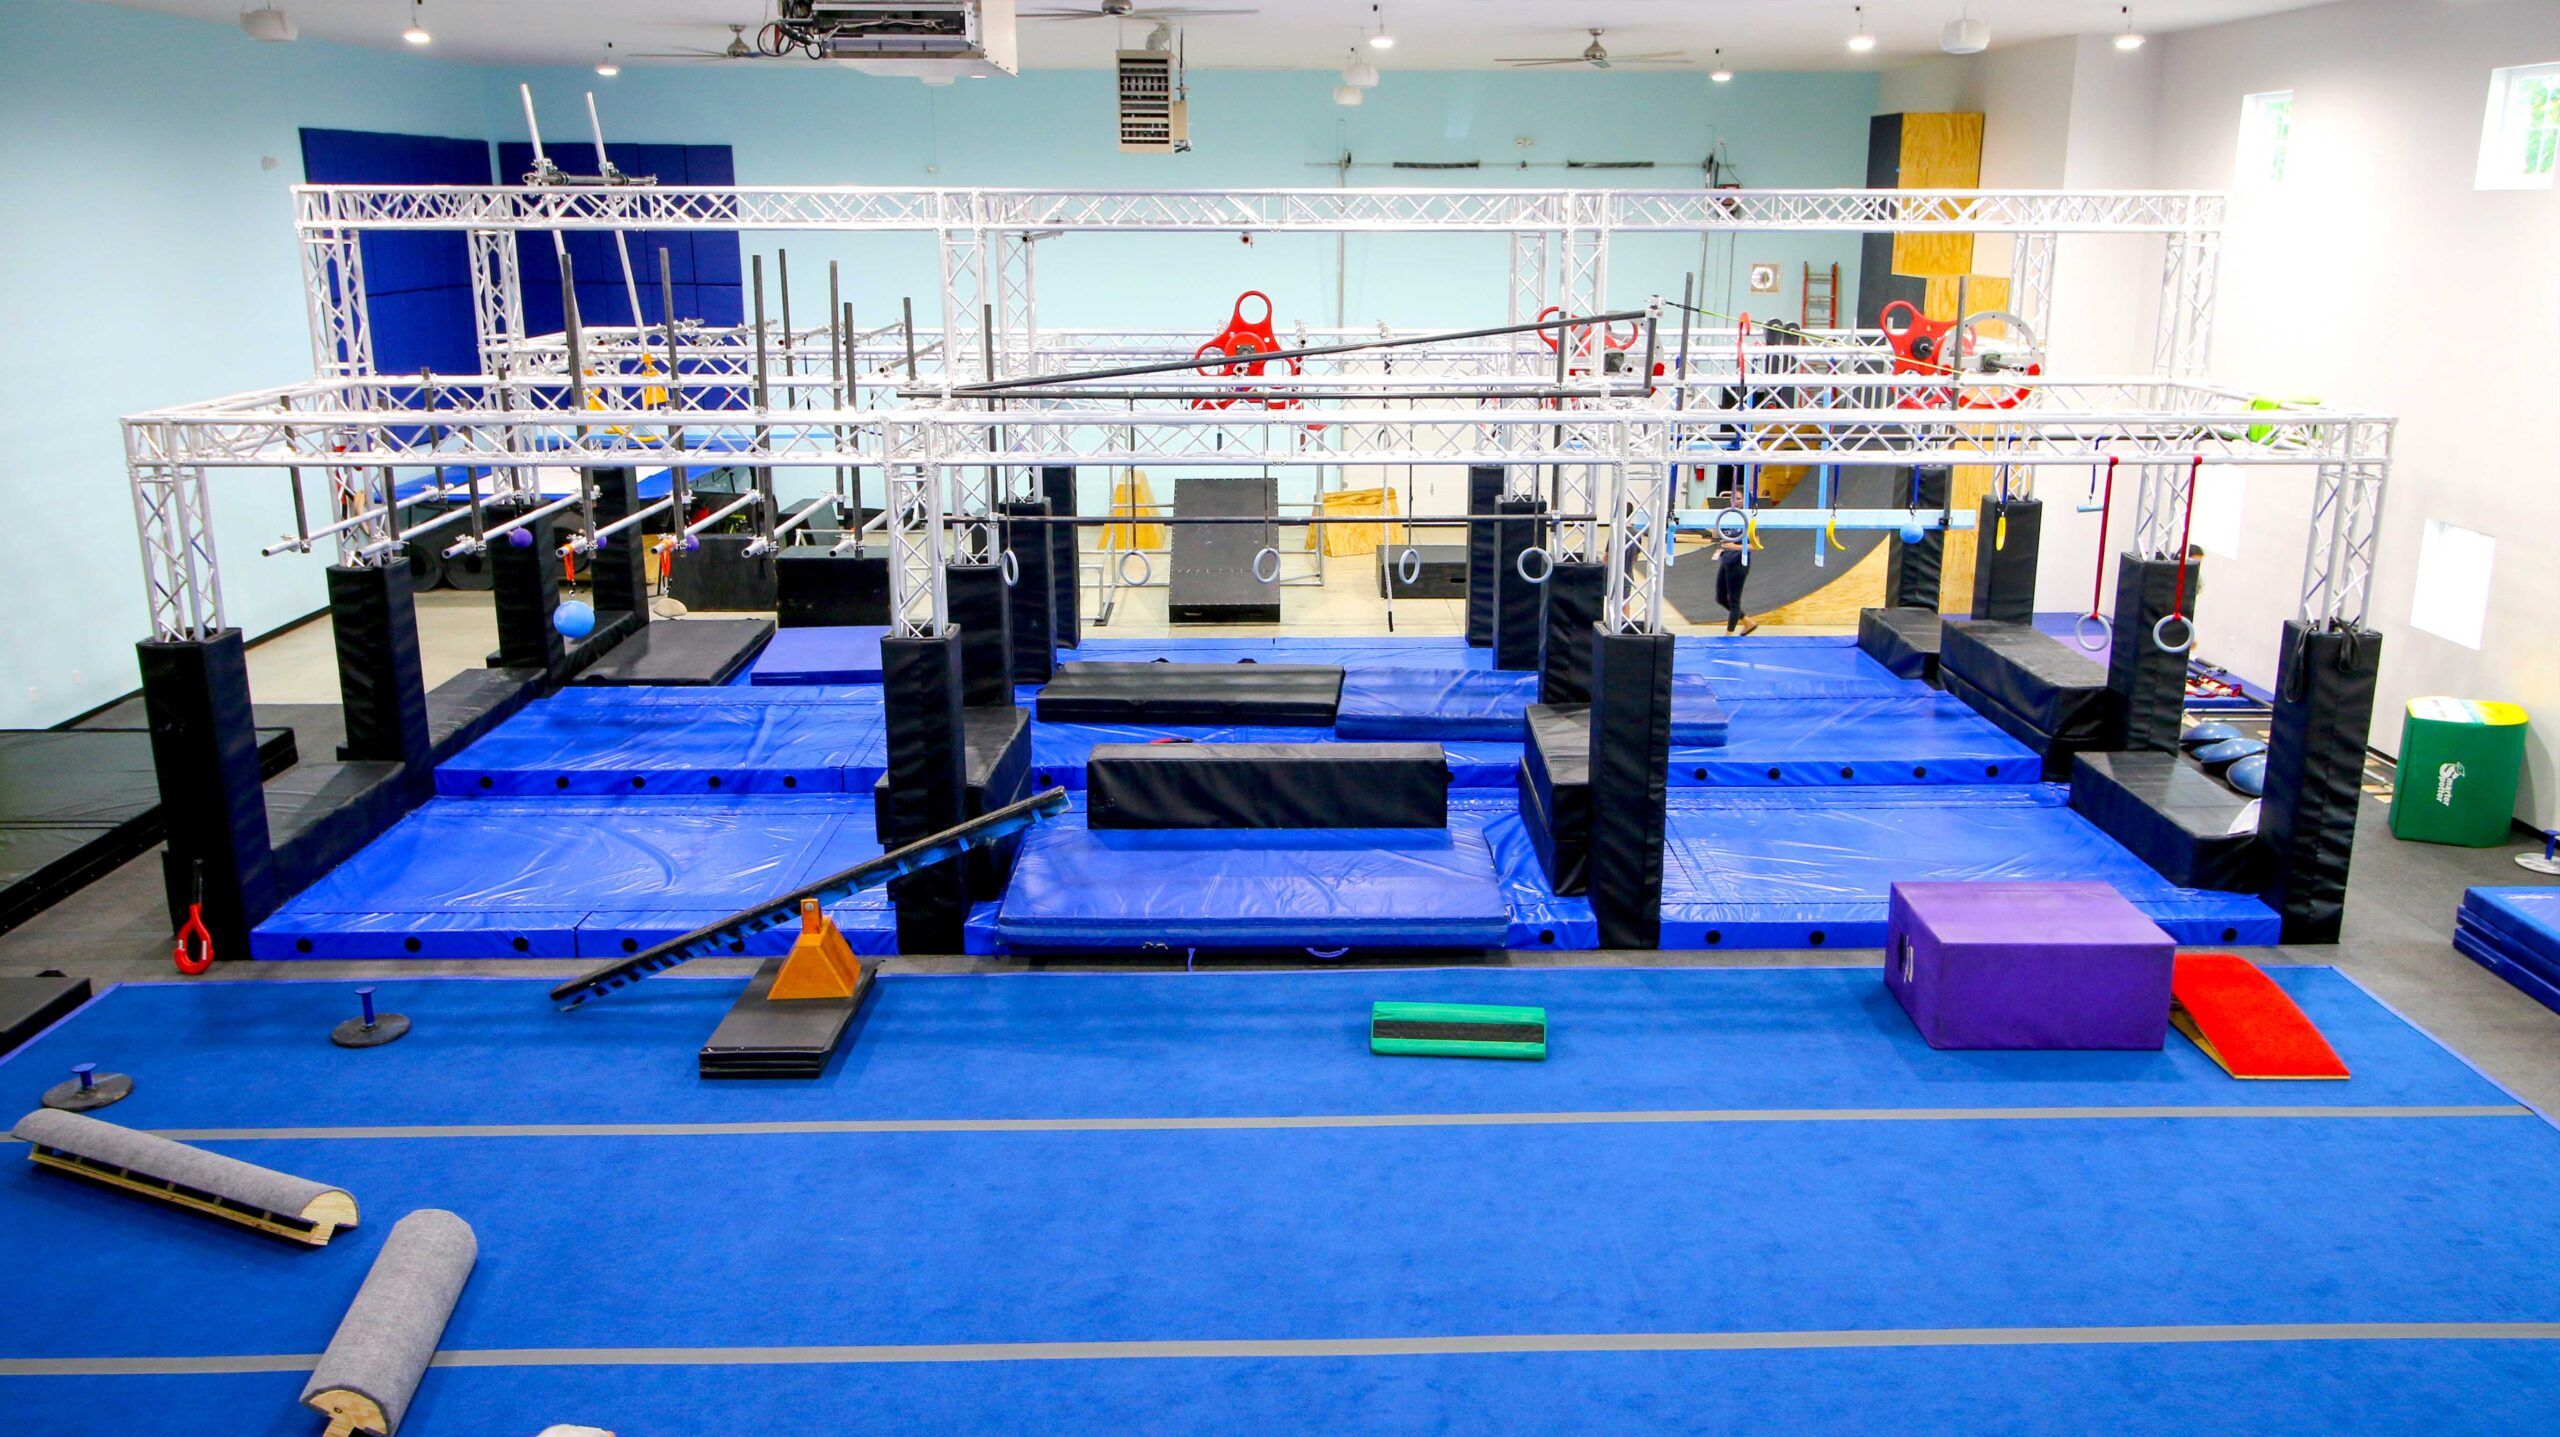 Overview look of the Ninja Generations facility; includes the Ninja Warrior course, spring matts, and balancing equipment